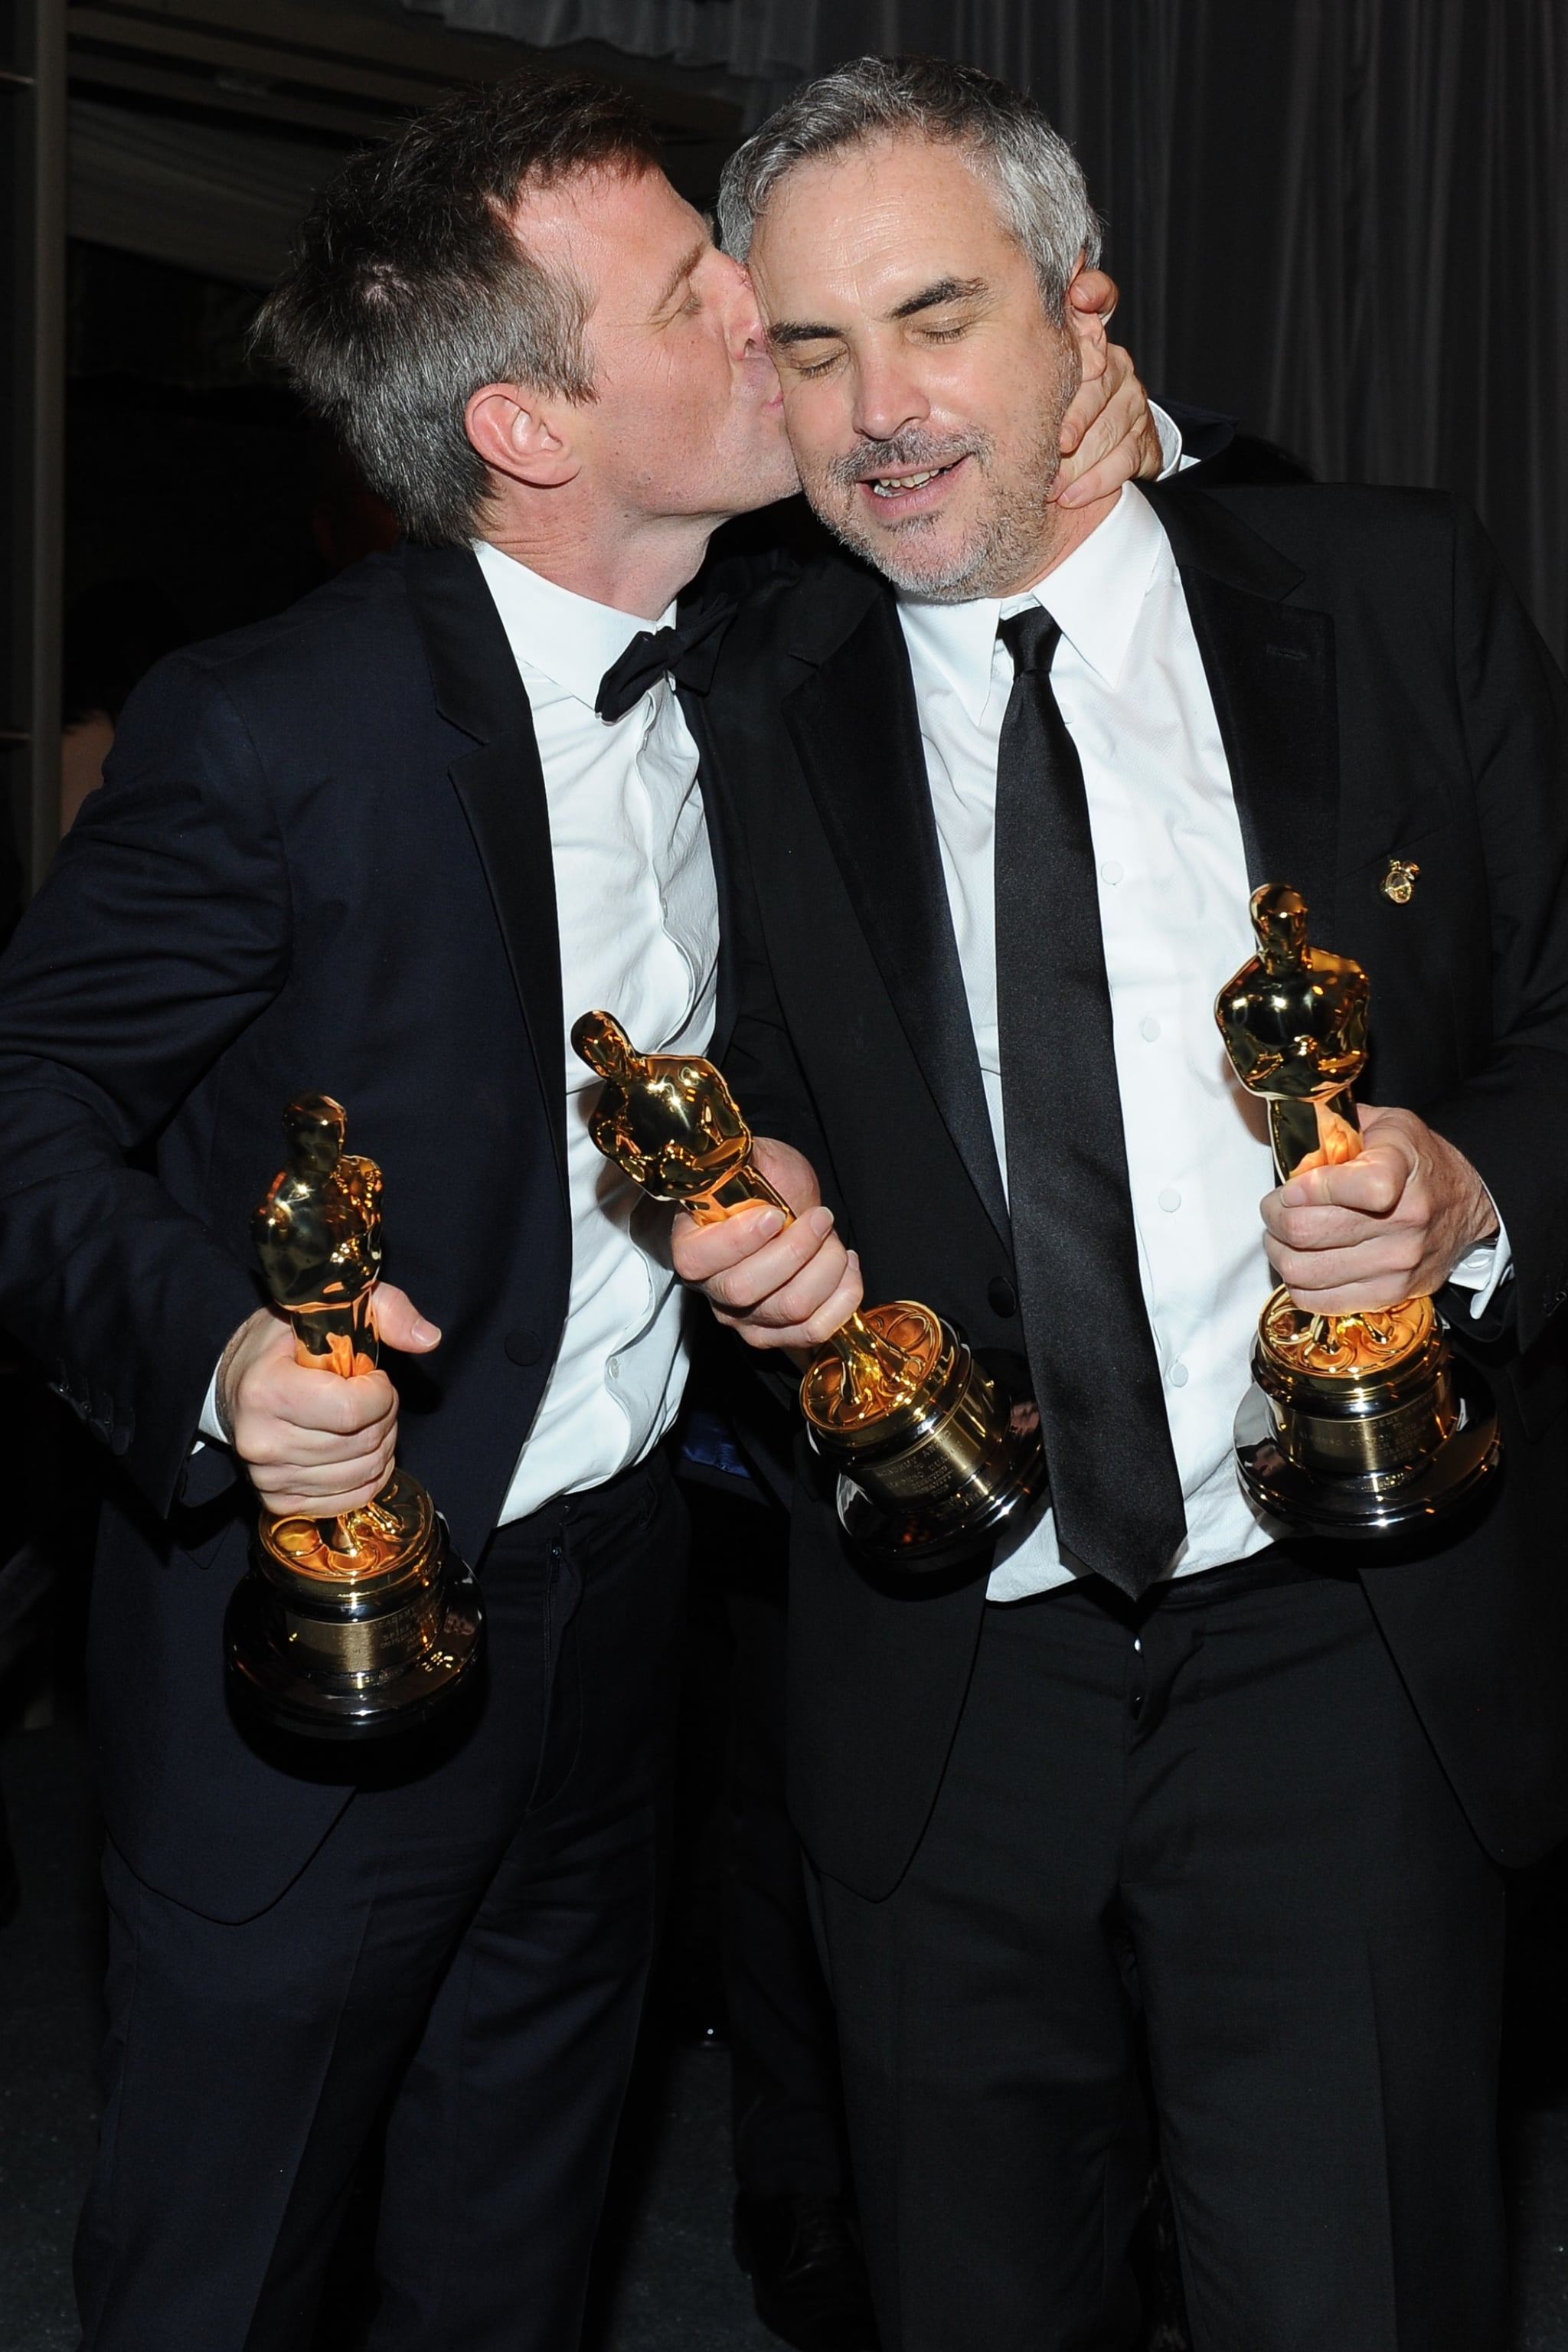 Spike Jonze, who won the Oscar for best original screenplay for Her, planted one on best director winner for Gravity Alfonso Cuarón.